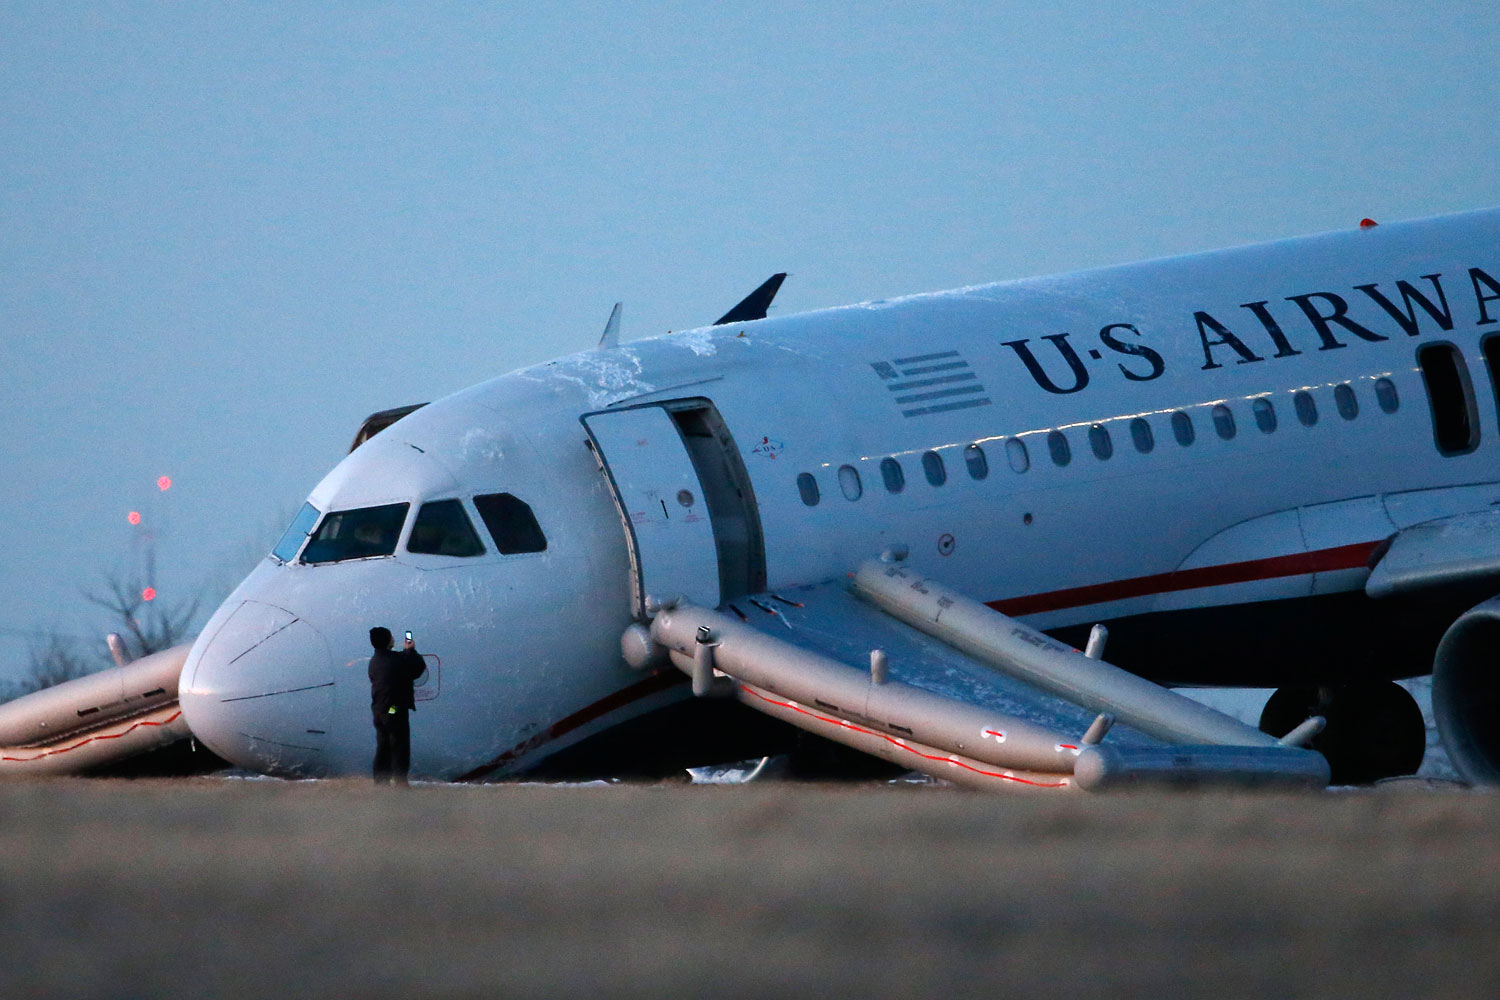 A person takes a photo of a damaged US Airways jet at the end of a runway at the Philadelphia International Airport, March 13, 2014, in Philadelphia.